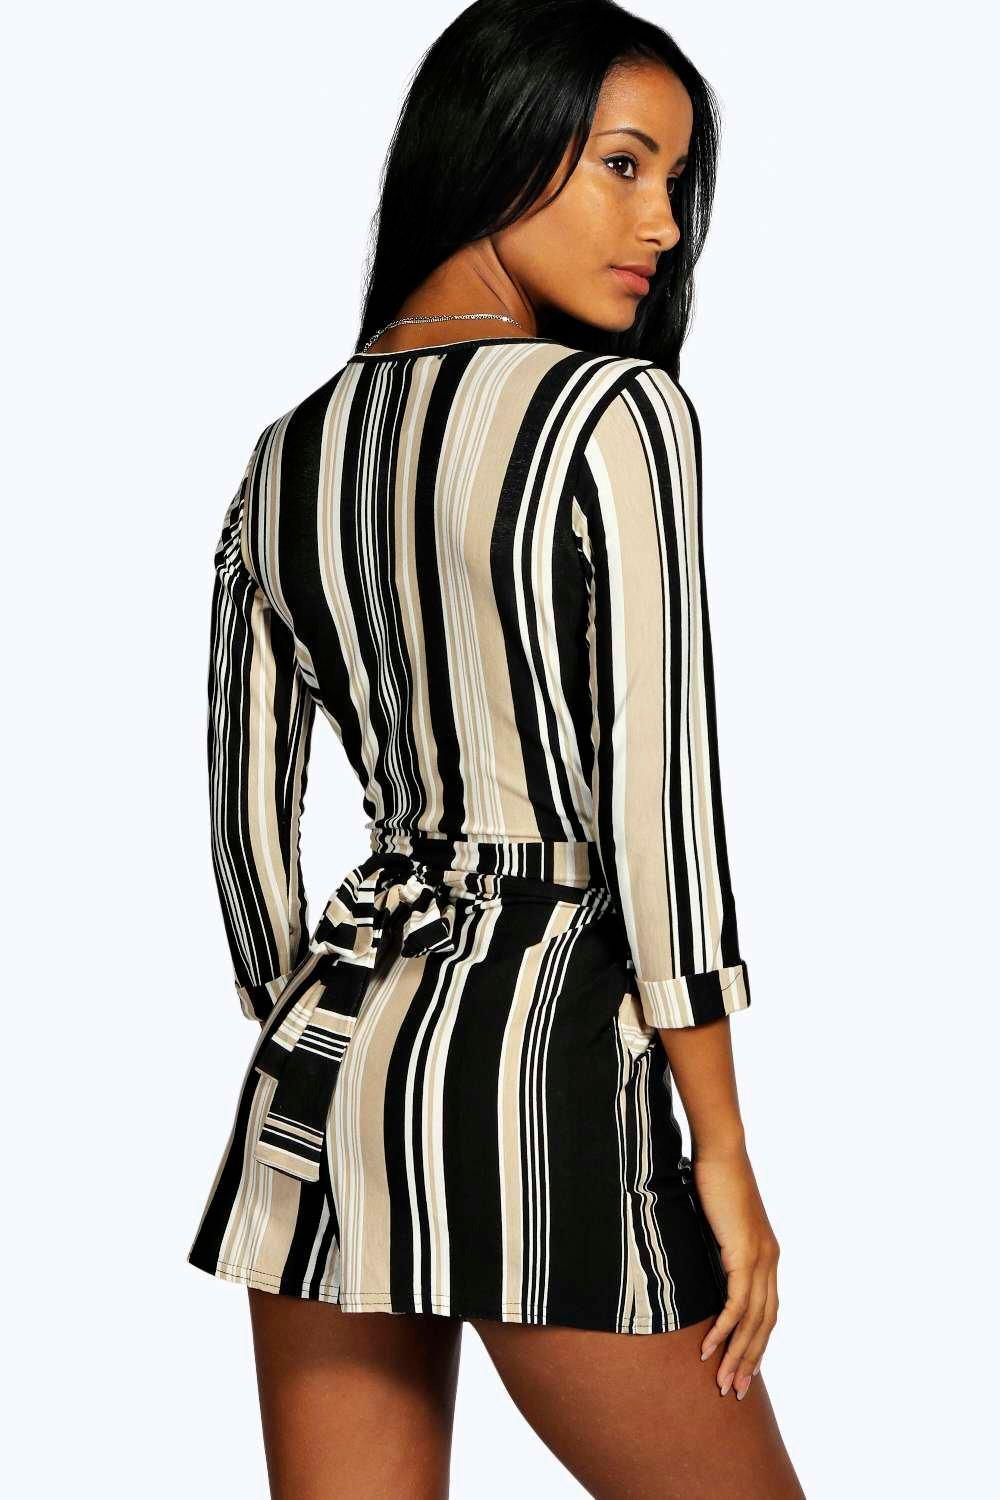 bf613c8a4c4 Boohoo - Multicolor Striped Relaxed Self Belt Playsuit - Lyst. View  fullscreen